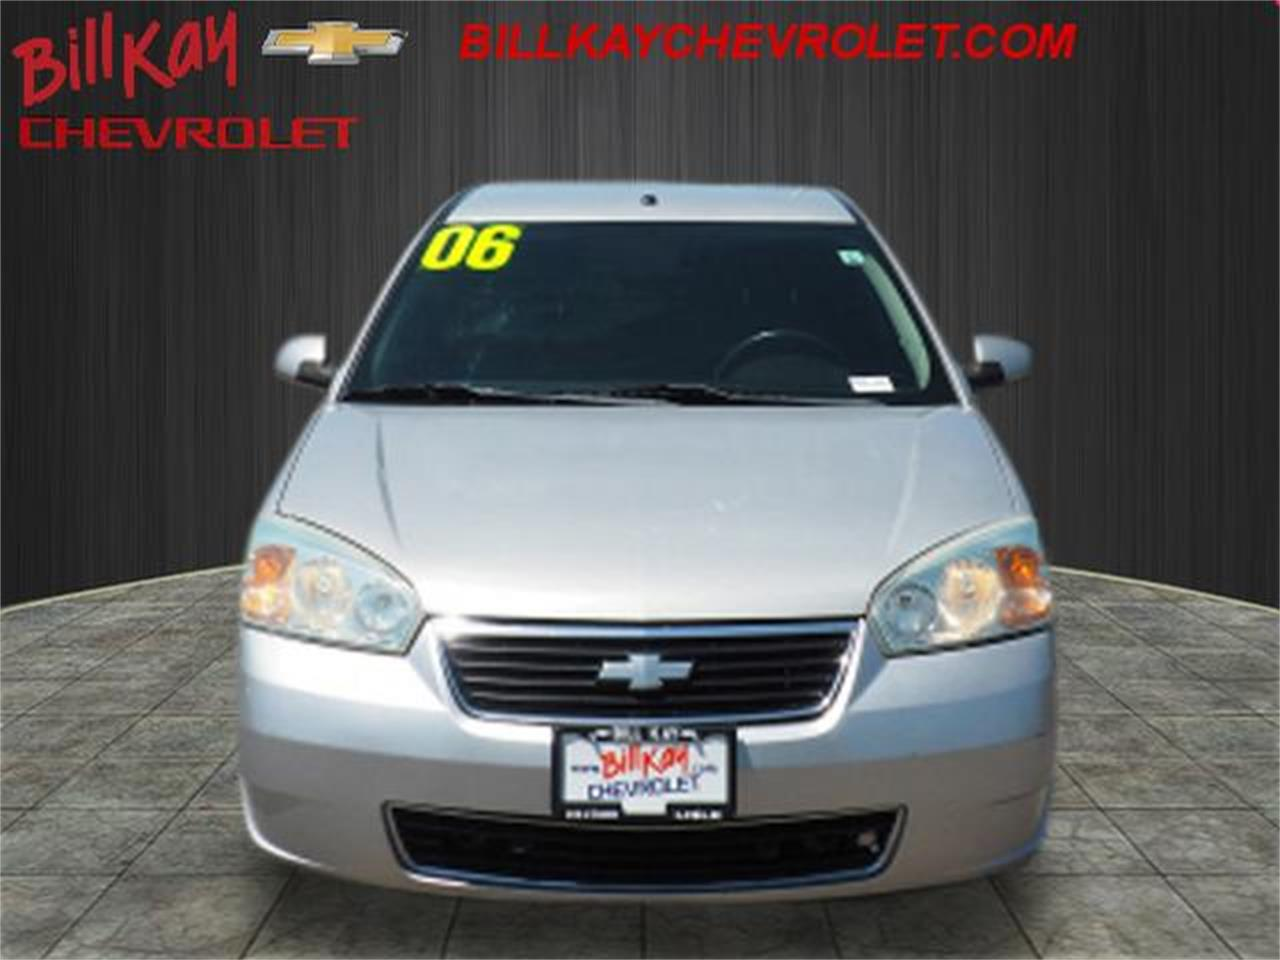 Large Picture of '06 Chevrolet Malibu Offered by Bill Kay Corvettes and Classics - Q3O7